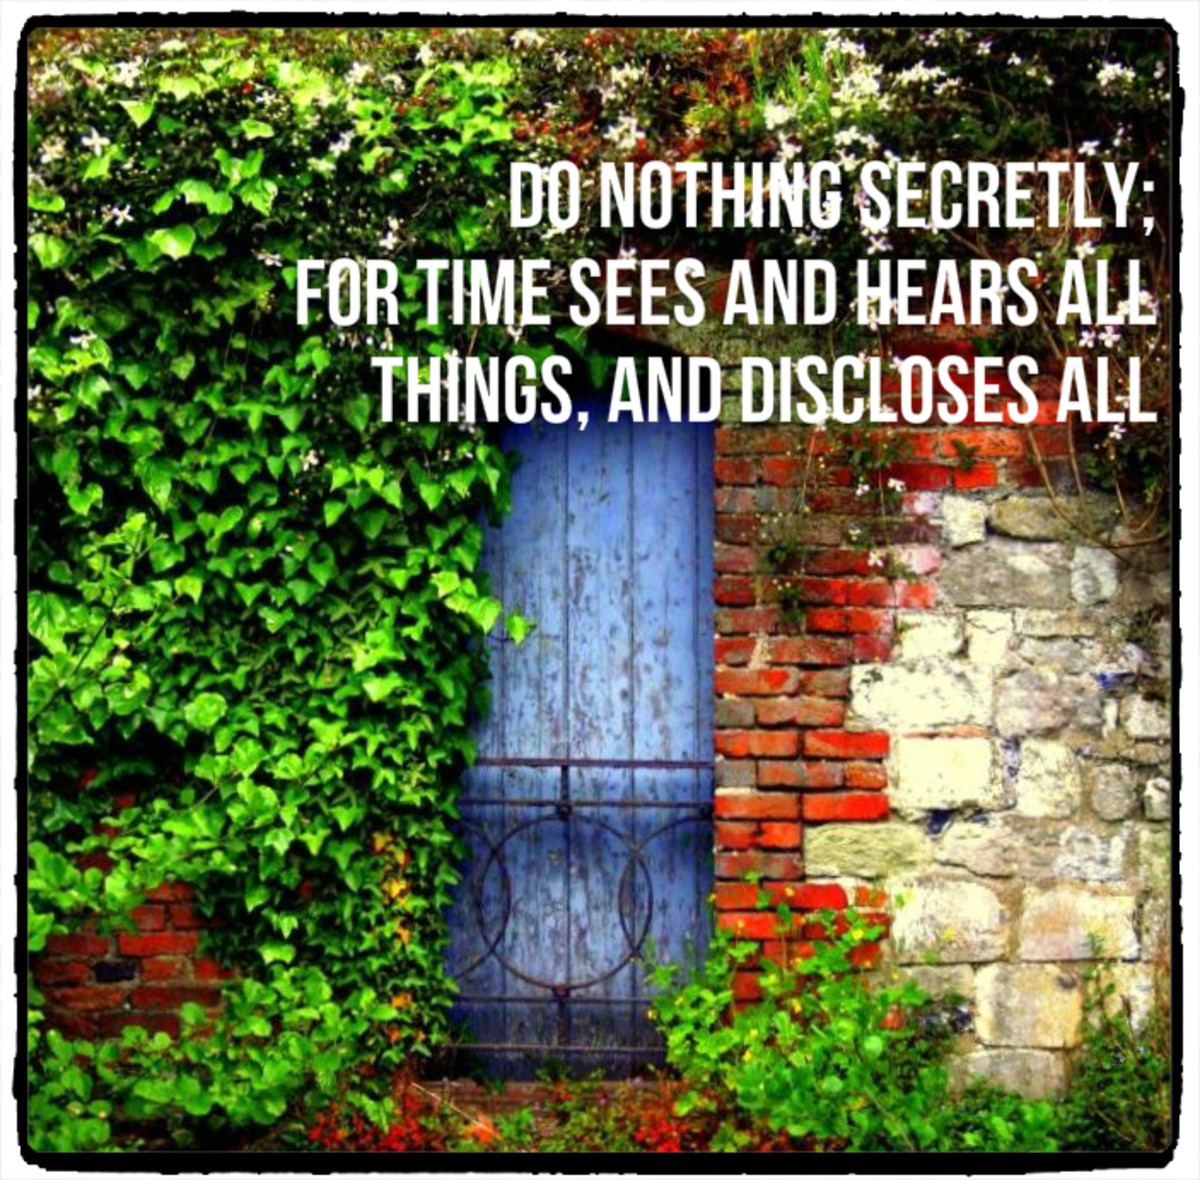 """Do nothing secretly; for Time sees and hears all things, and discloses all."" - Sophocles, Greek playwright"